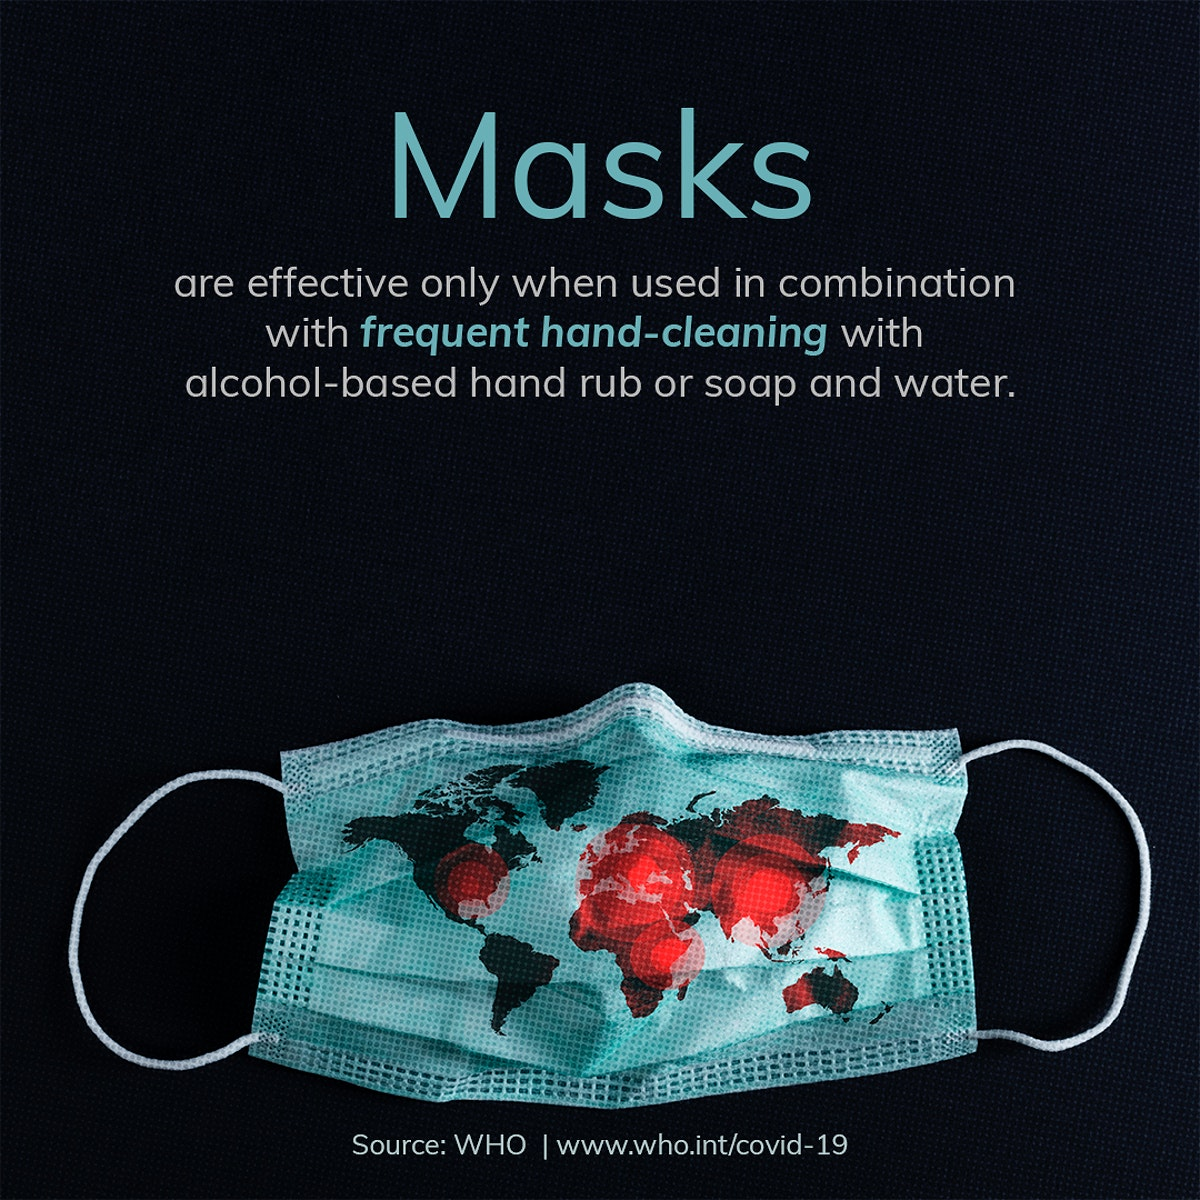 Wear a mask to protect yourself from the coronavirus awareness message template source WHO